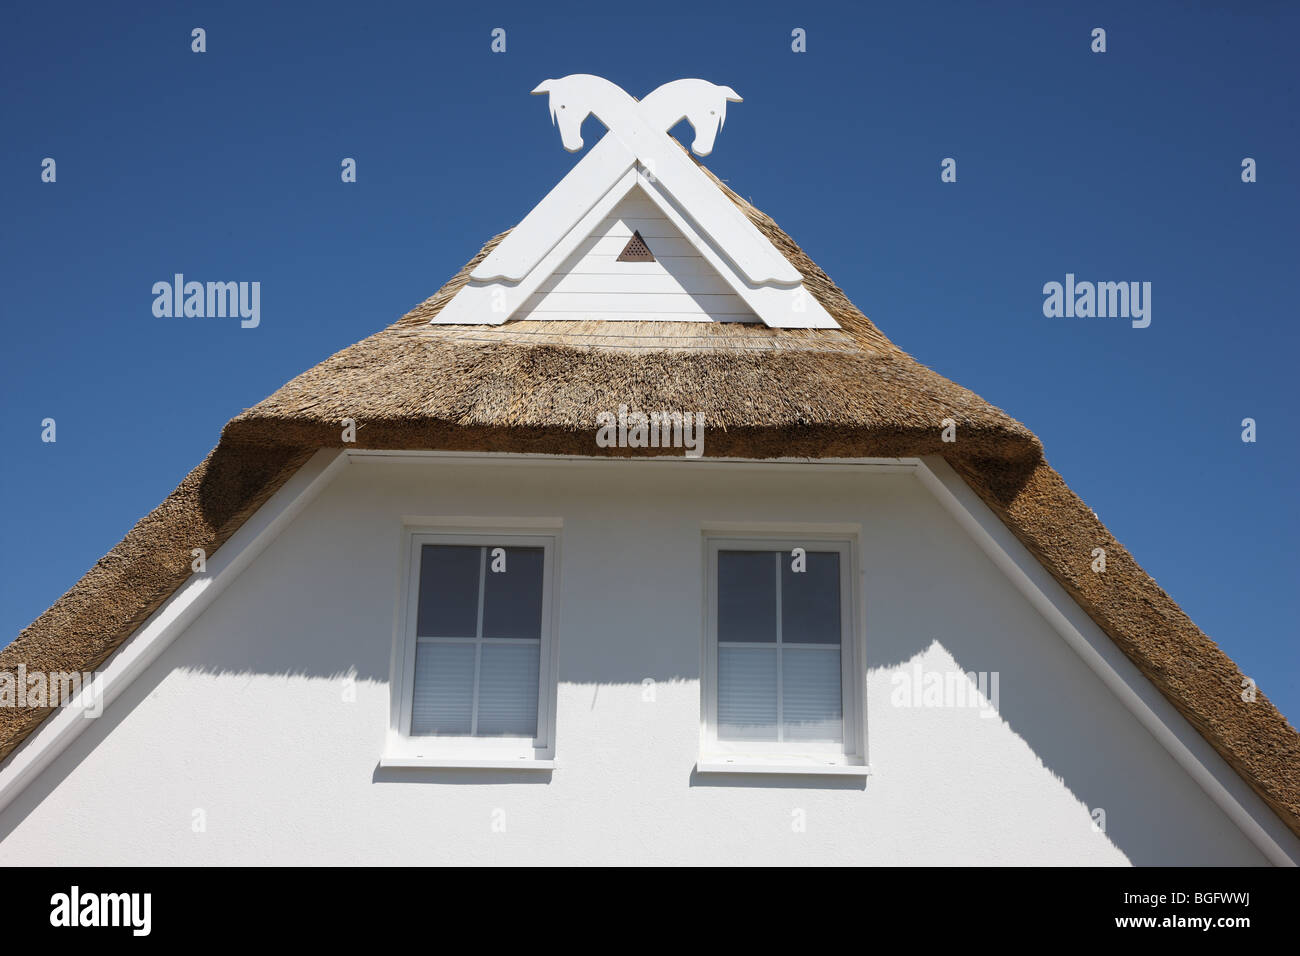 gable of a holiday house in the northeast side of the Rügen, Mecklenburg-Vorpommern, Germany, Europa. - Stock Image